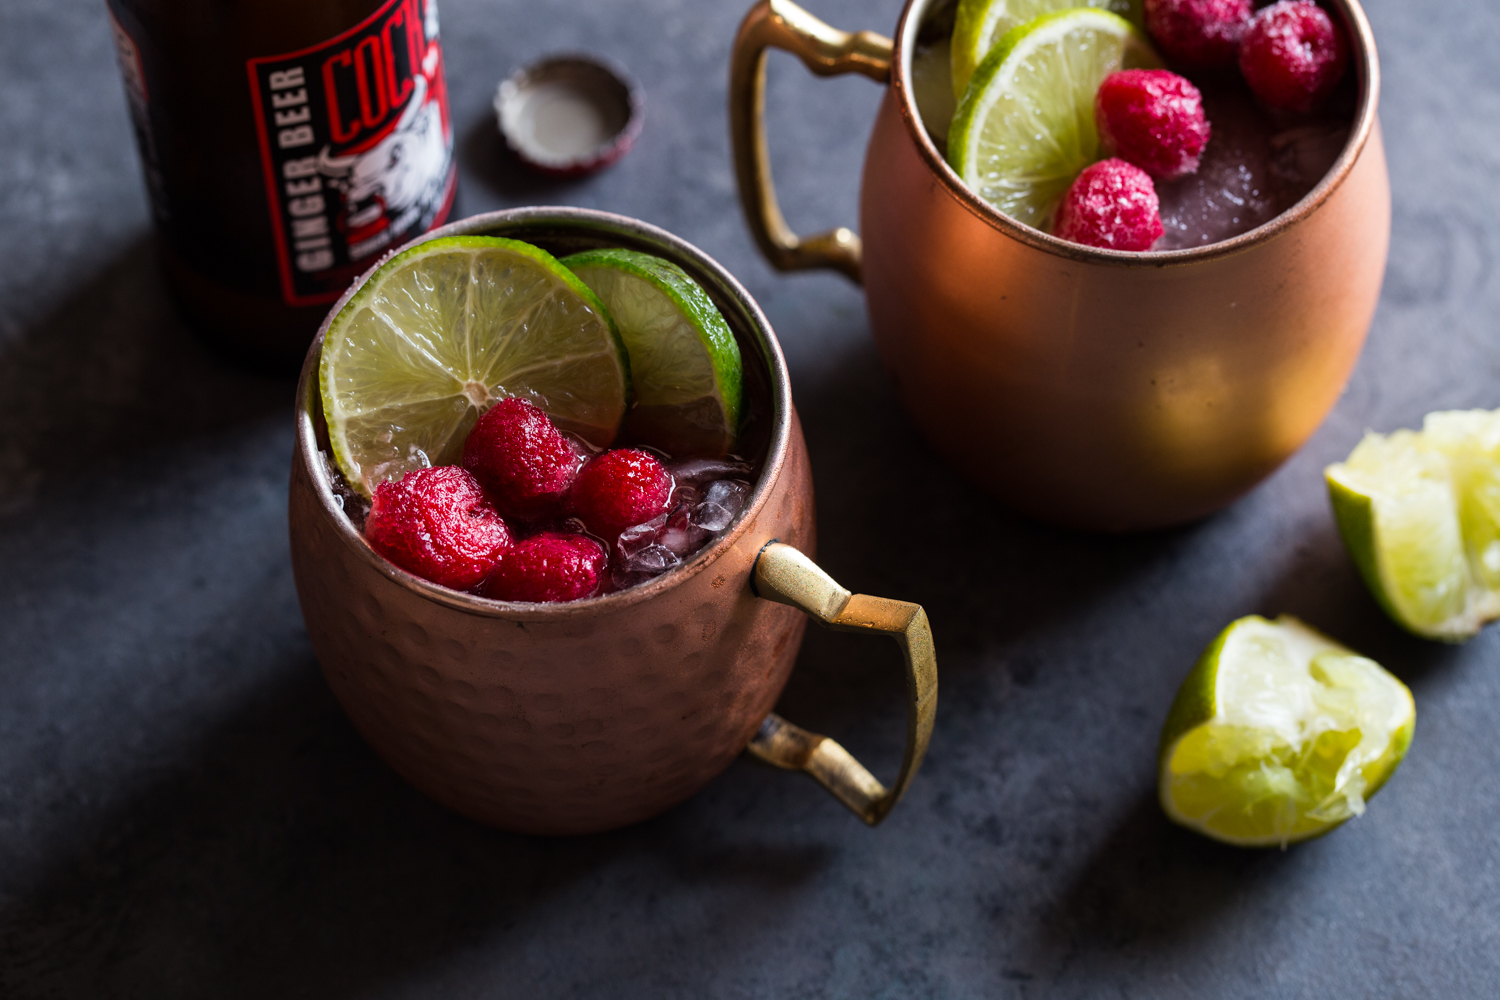 Michigan Mule with tart cherry concentrate, fresh lime, and spicy ginger beer!